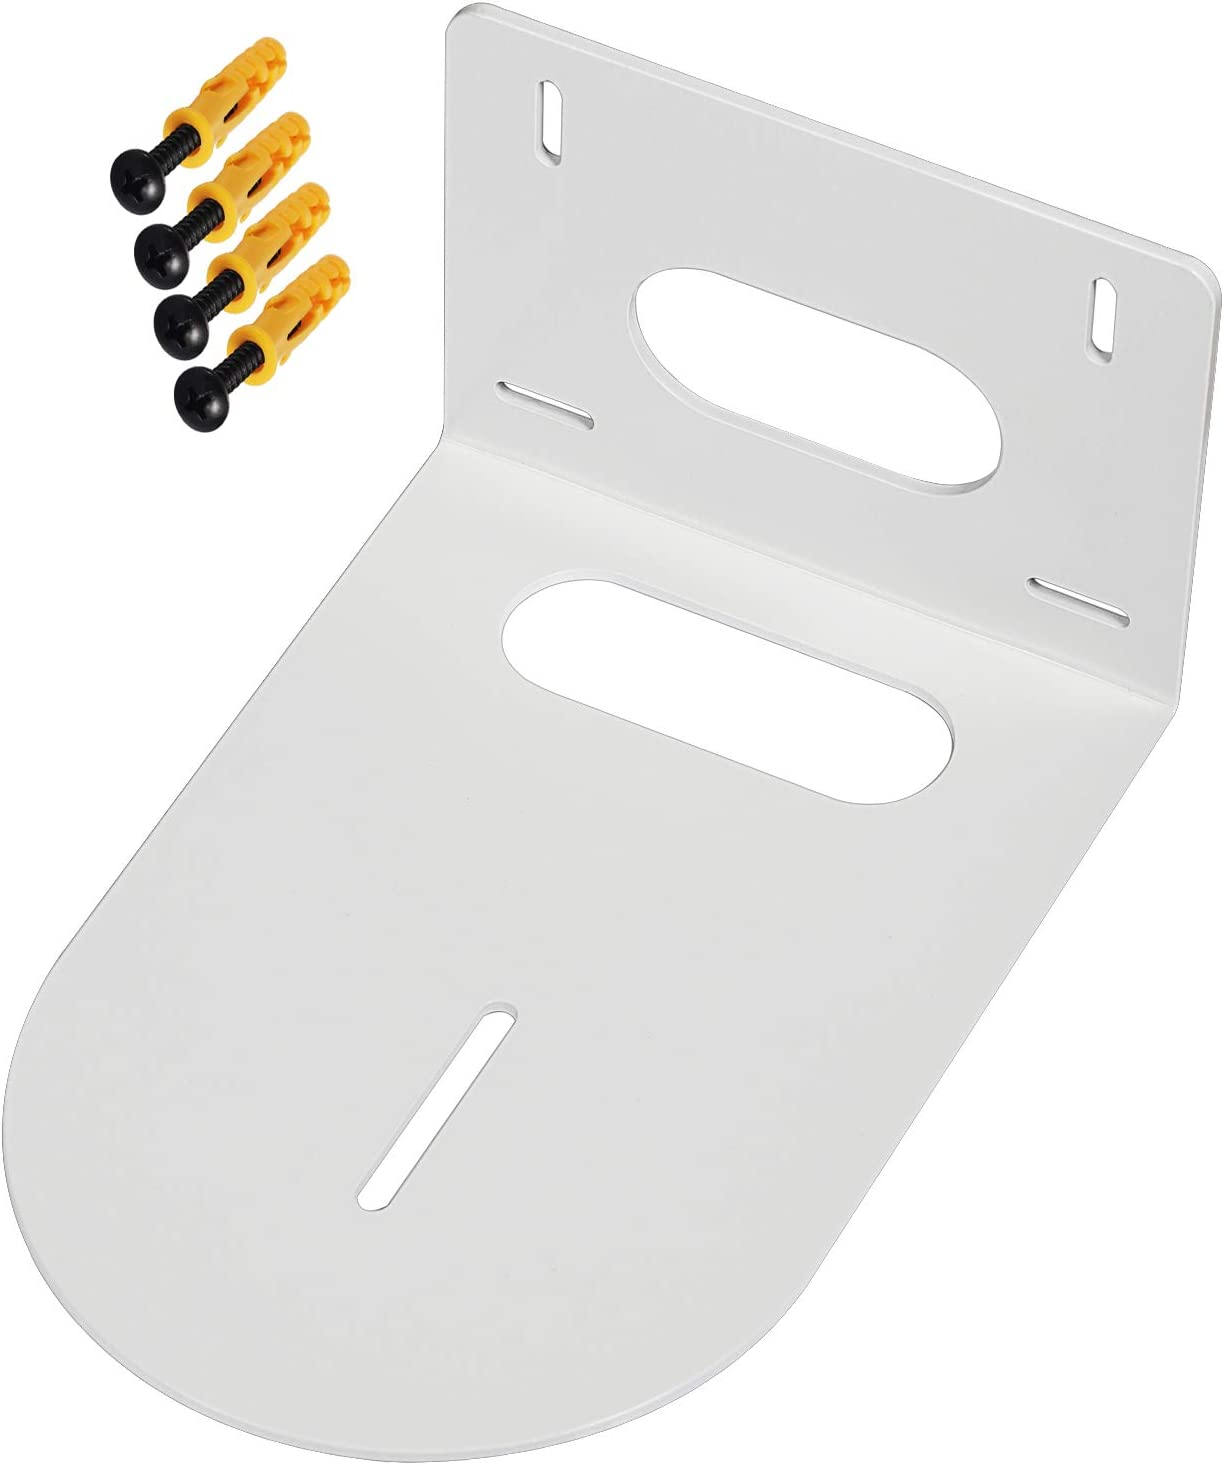 White Small Universal Wall Mount Bracket for Select Cameras